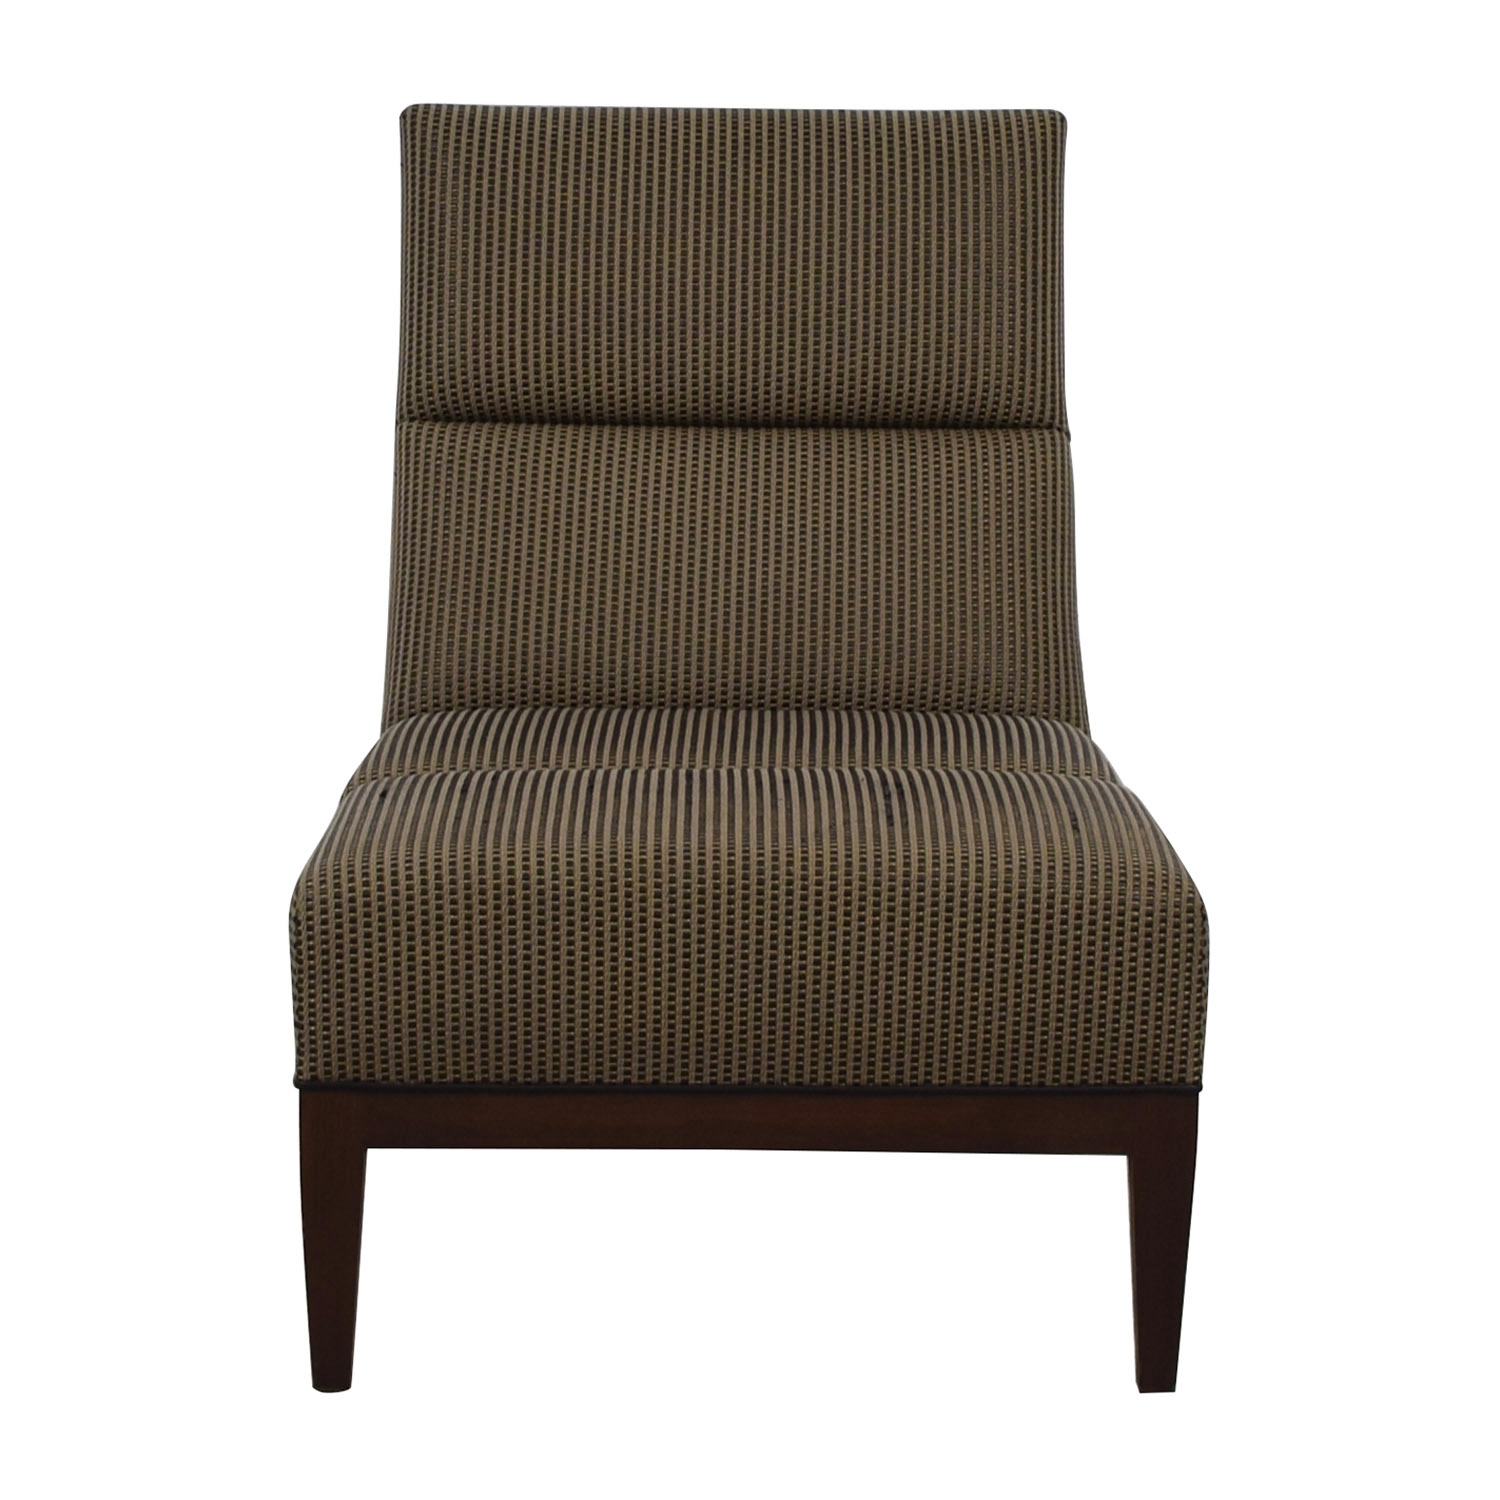 90 Off Furniture Masters Furniture Masters Brown Tweed